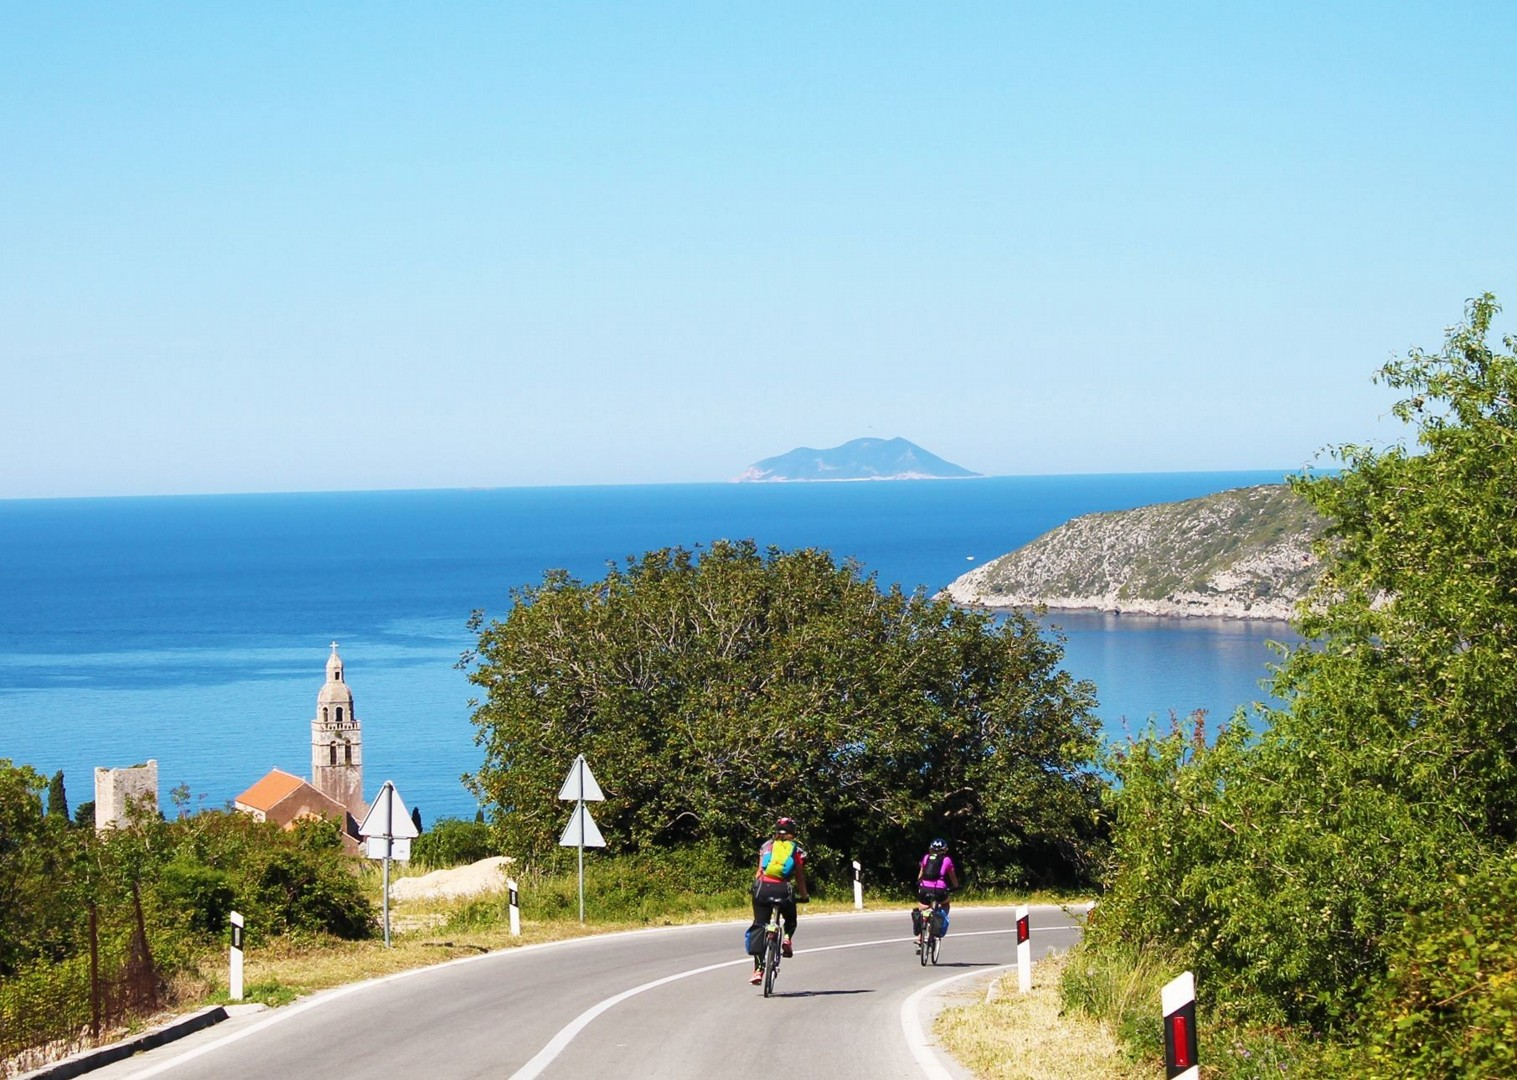 coastal-ride-leisure-boat-views-croatia-skedaddle.jpg - Croatia - Southern Dalmatia Plus - Bike and Boat Holiday - Leisure Cycling